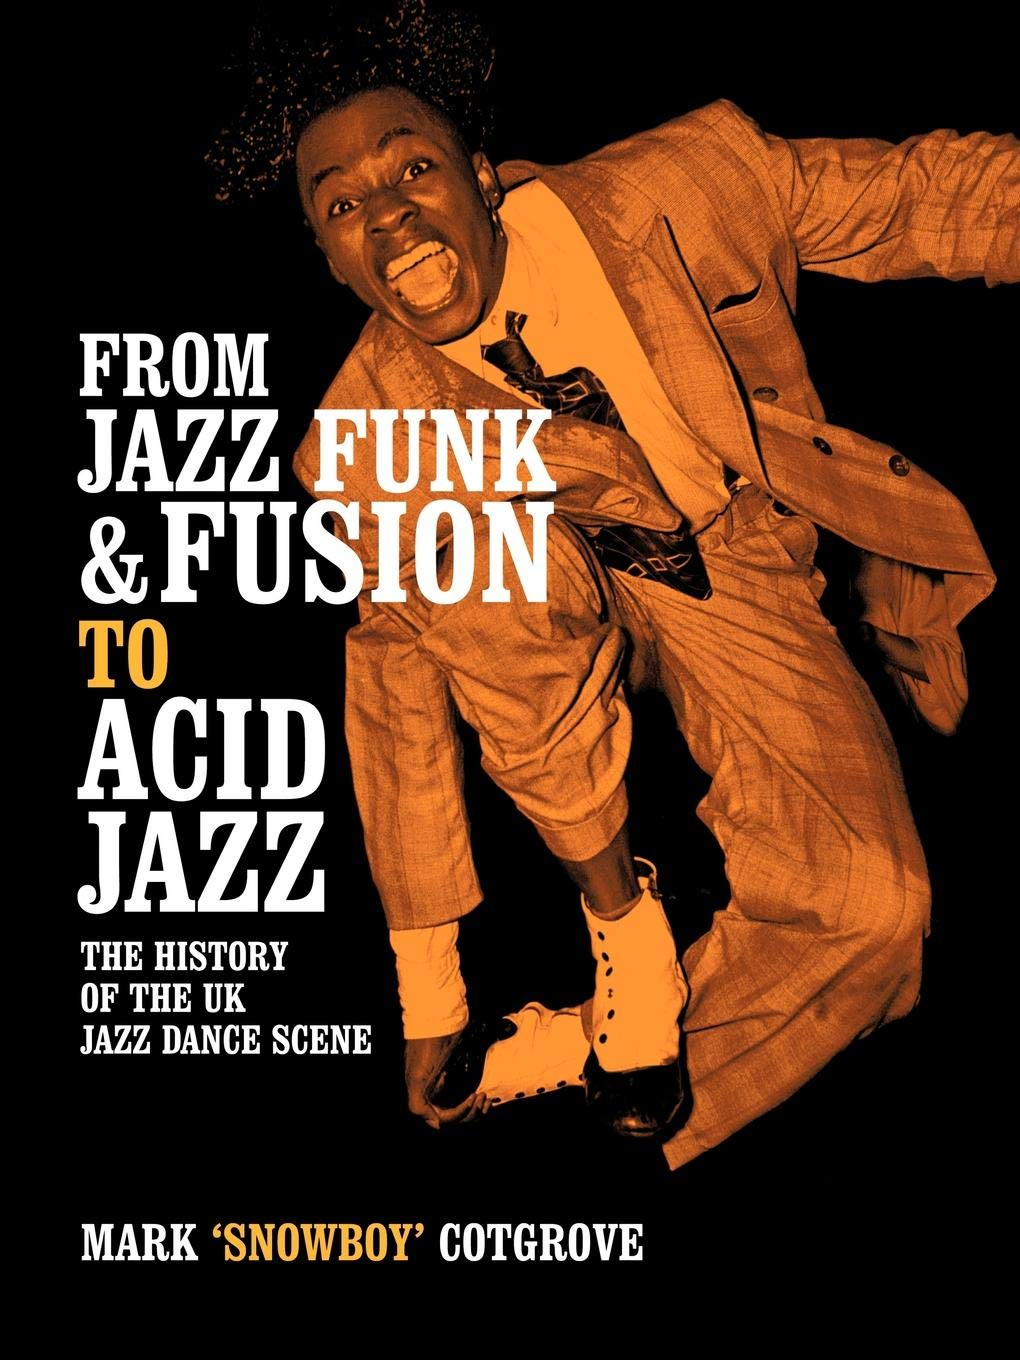 FROM JAZZ FUNK & FUSION TO ACID JAZZ: THE HISTORY OF THE UK